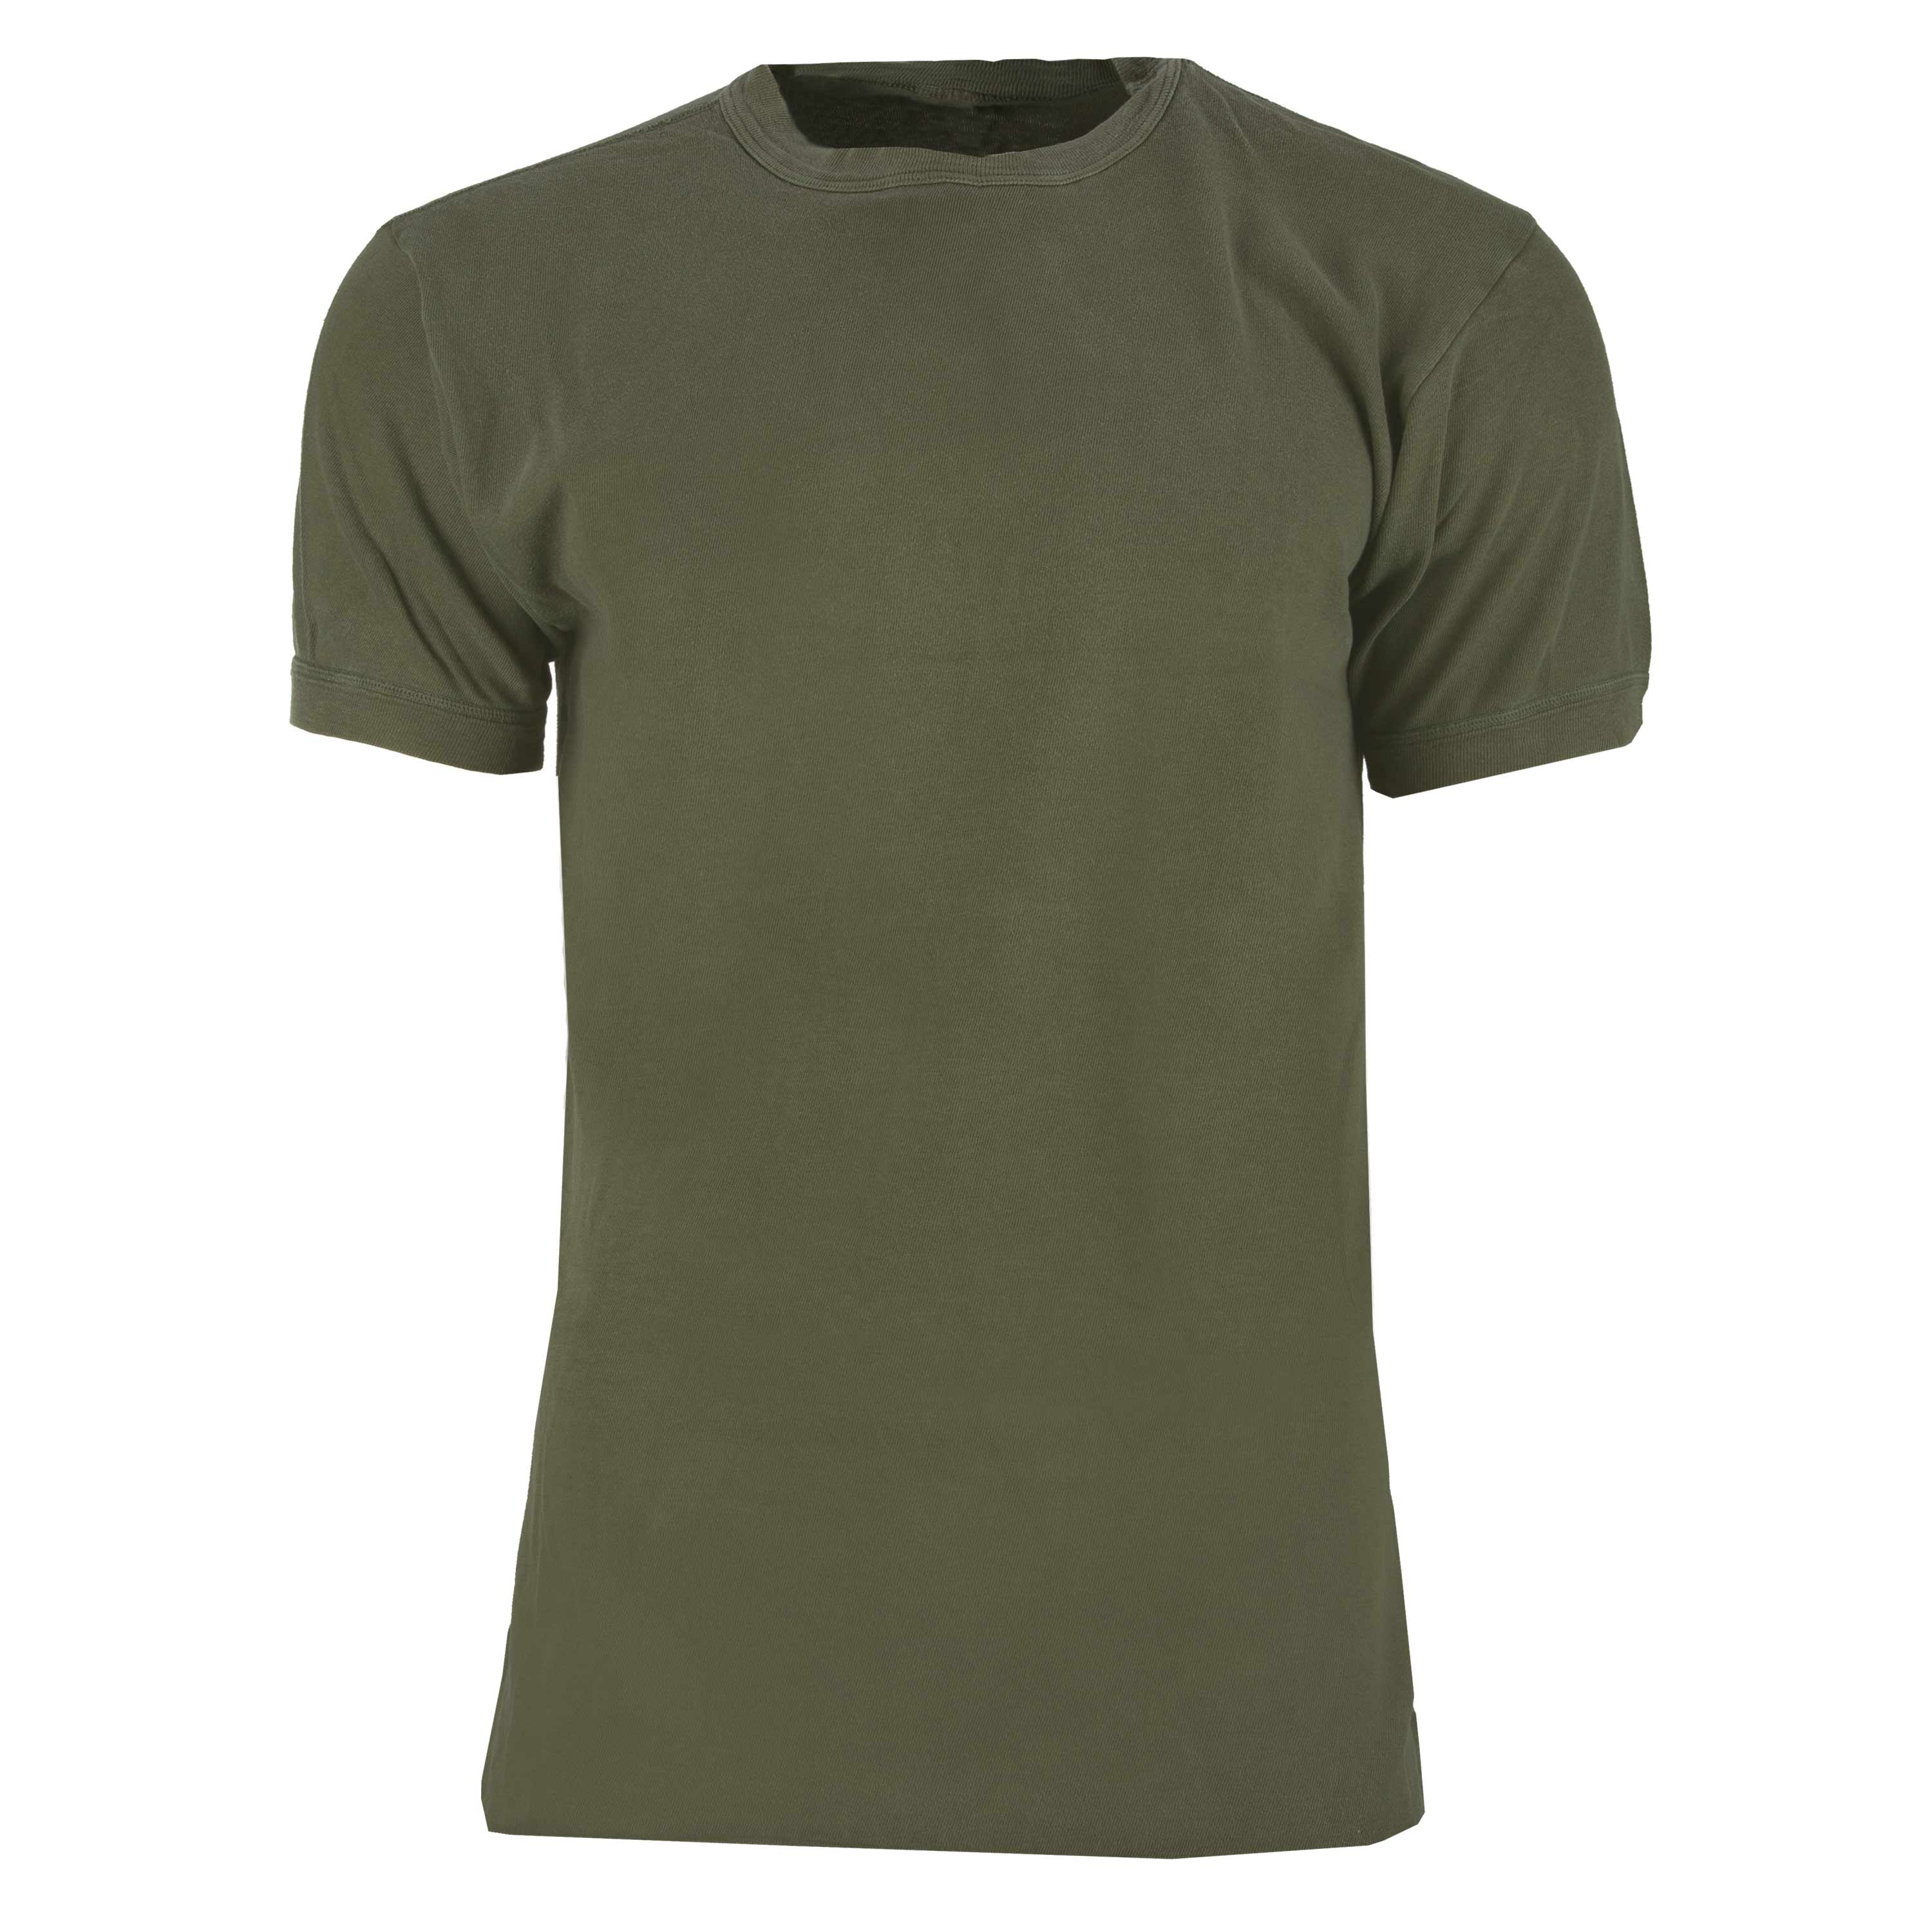 German Army Under Shirt Short Sleeve used